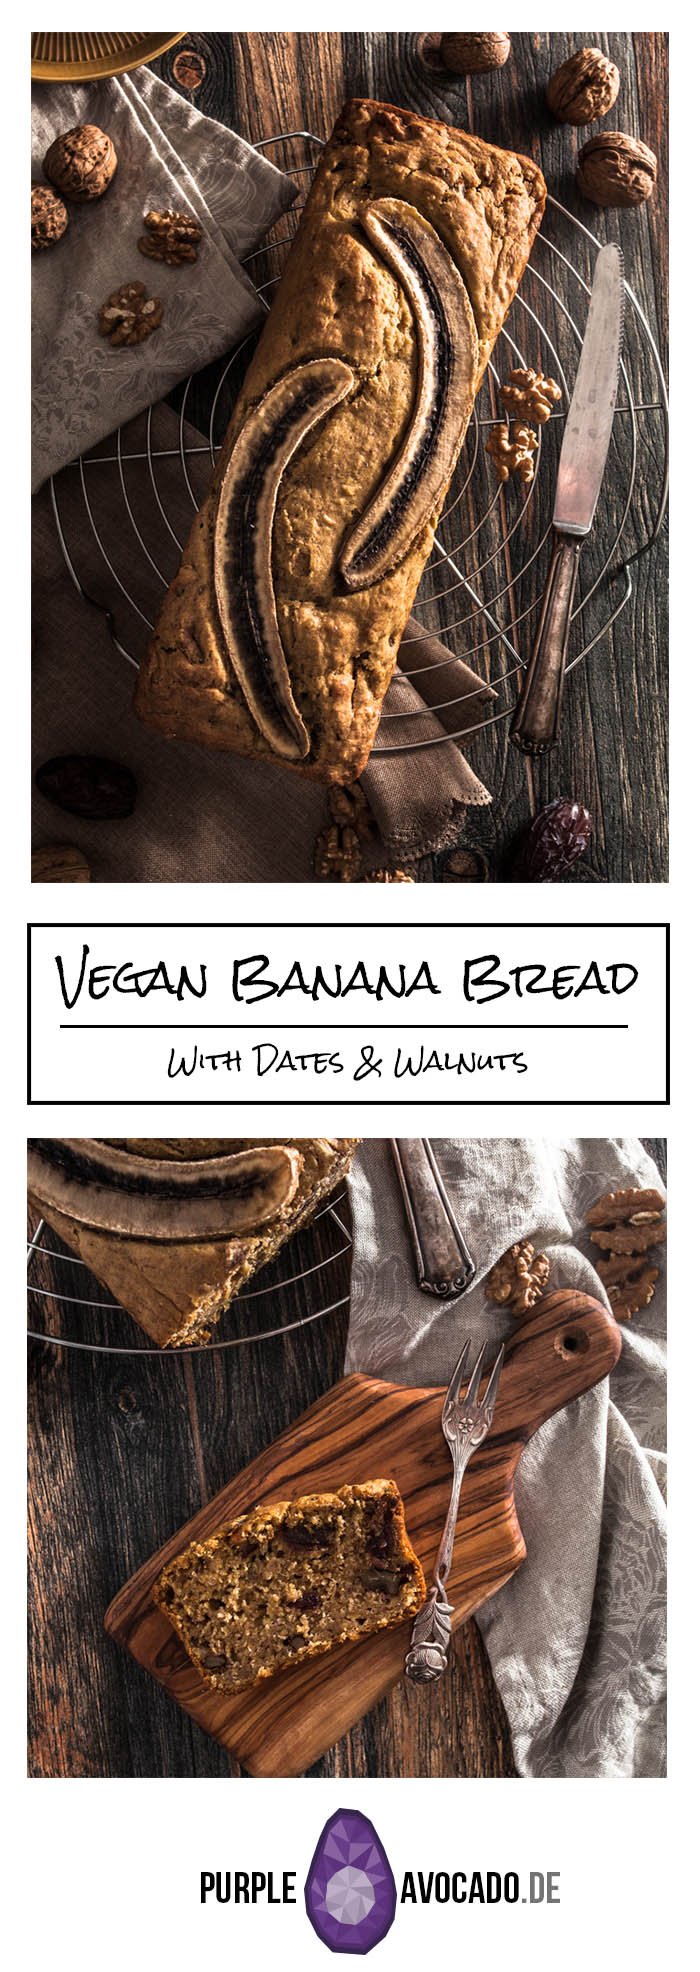 Recipe for a healthy banana bread with dates and walnuts. #recipes #vegan #sugarless #baking